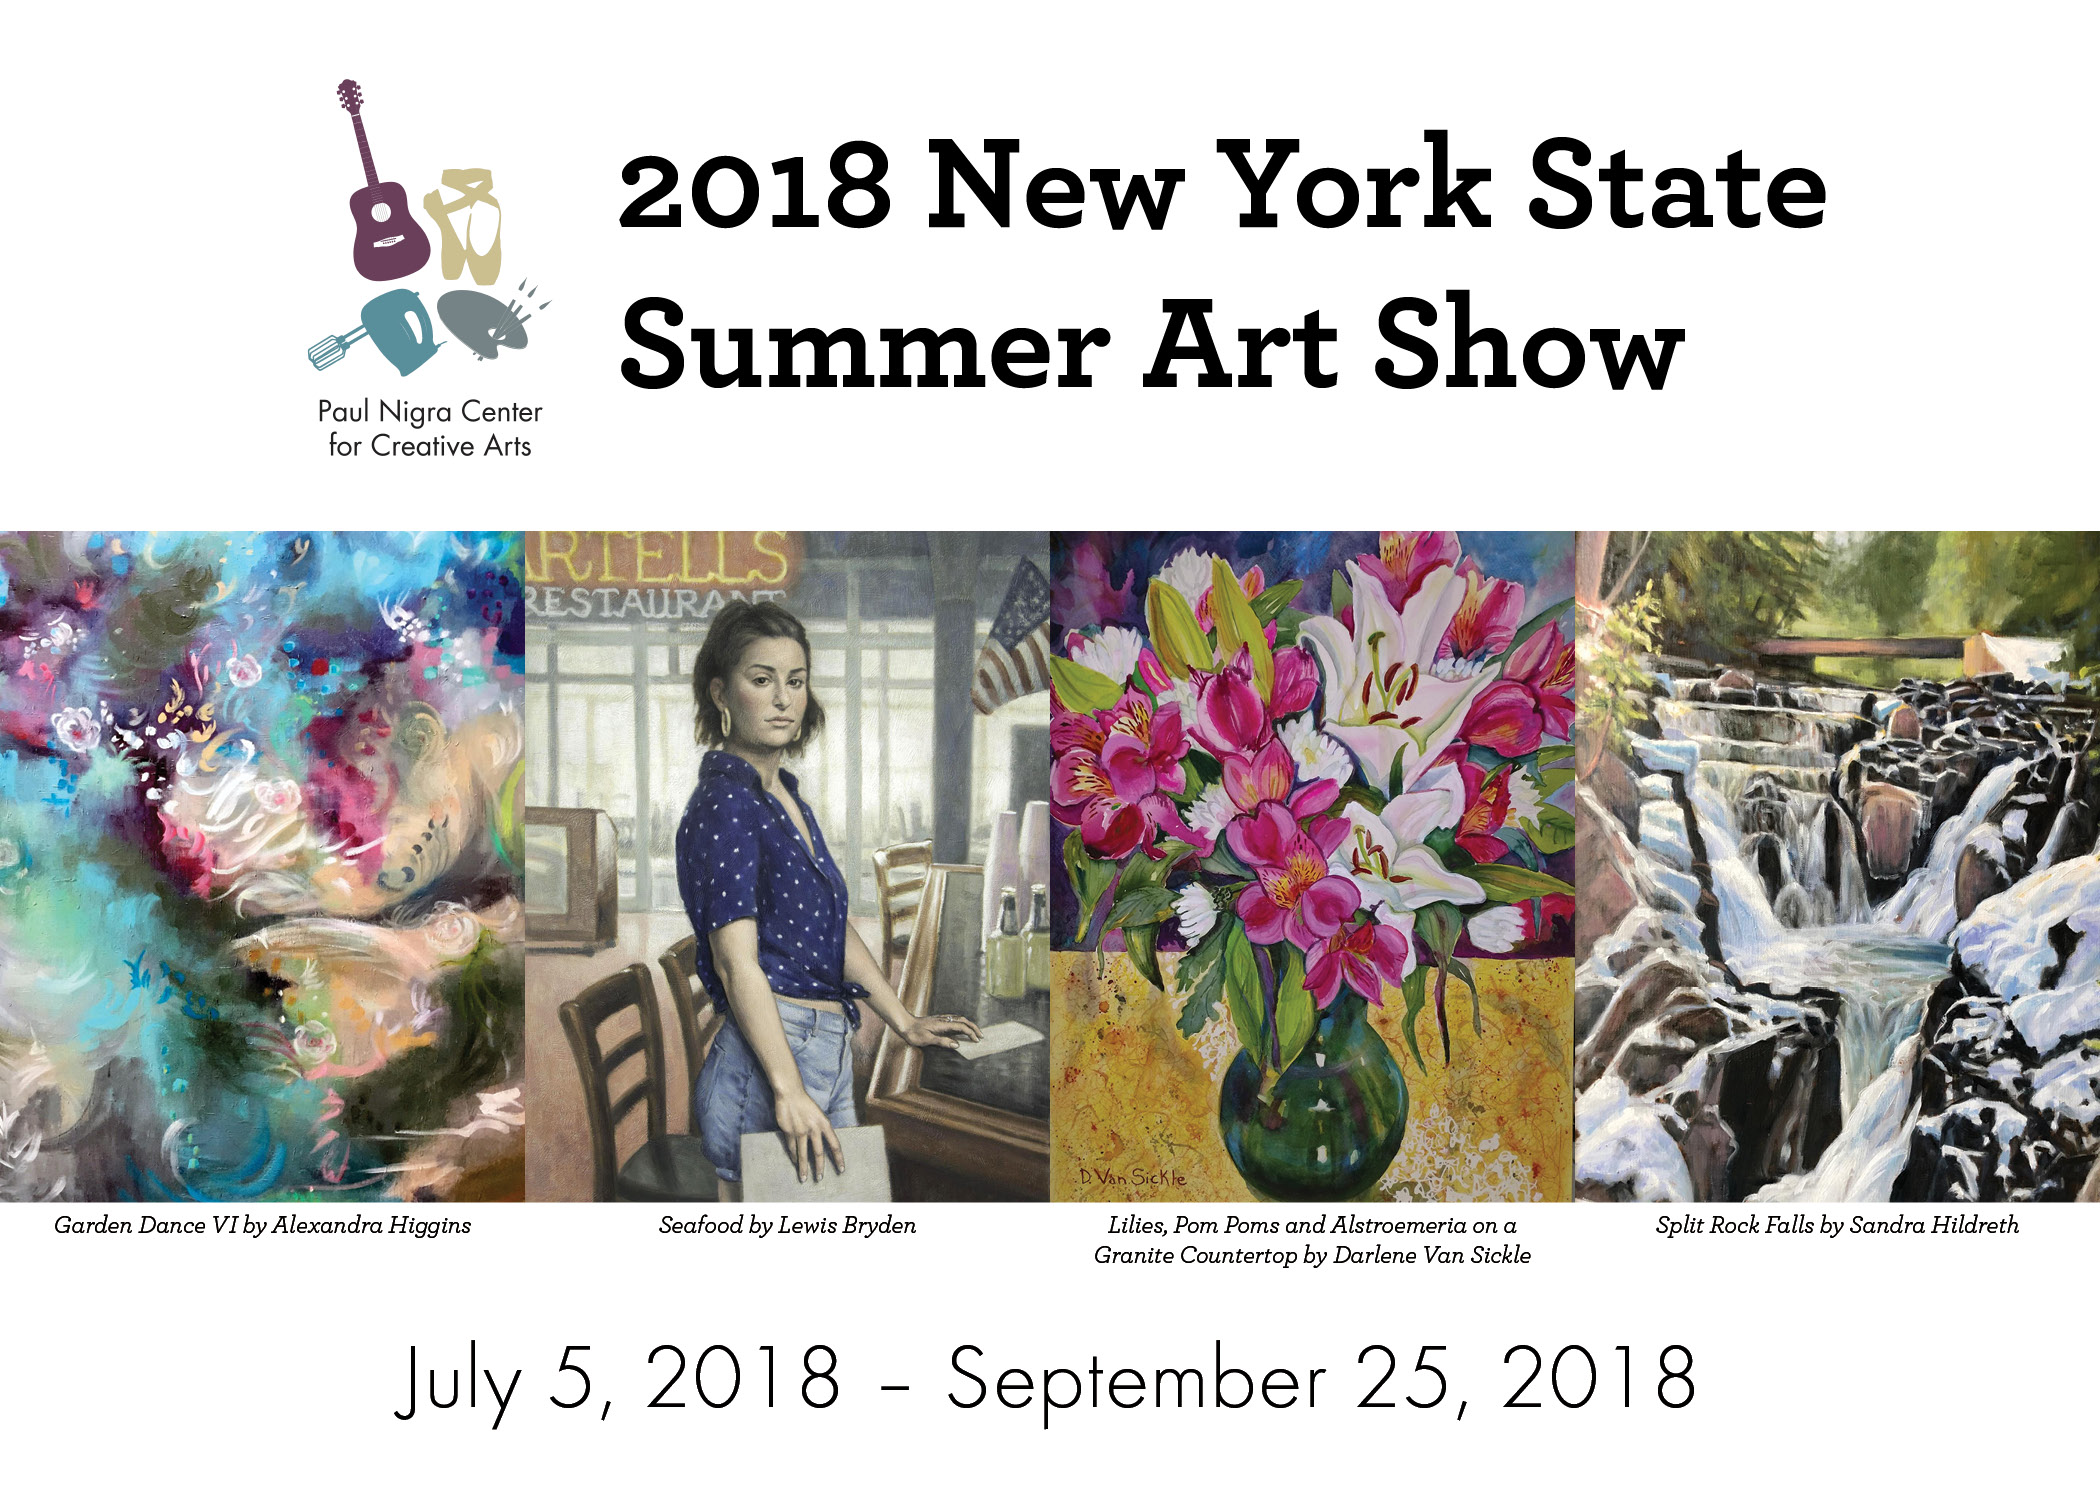 2018 New York State Summer Art Show homepage notice.jpg